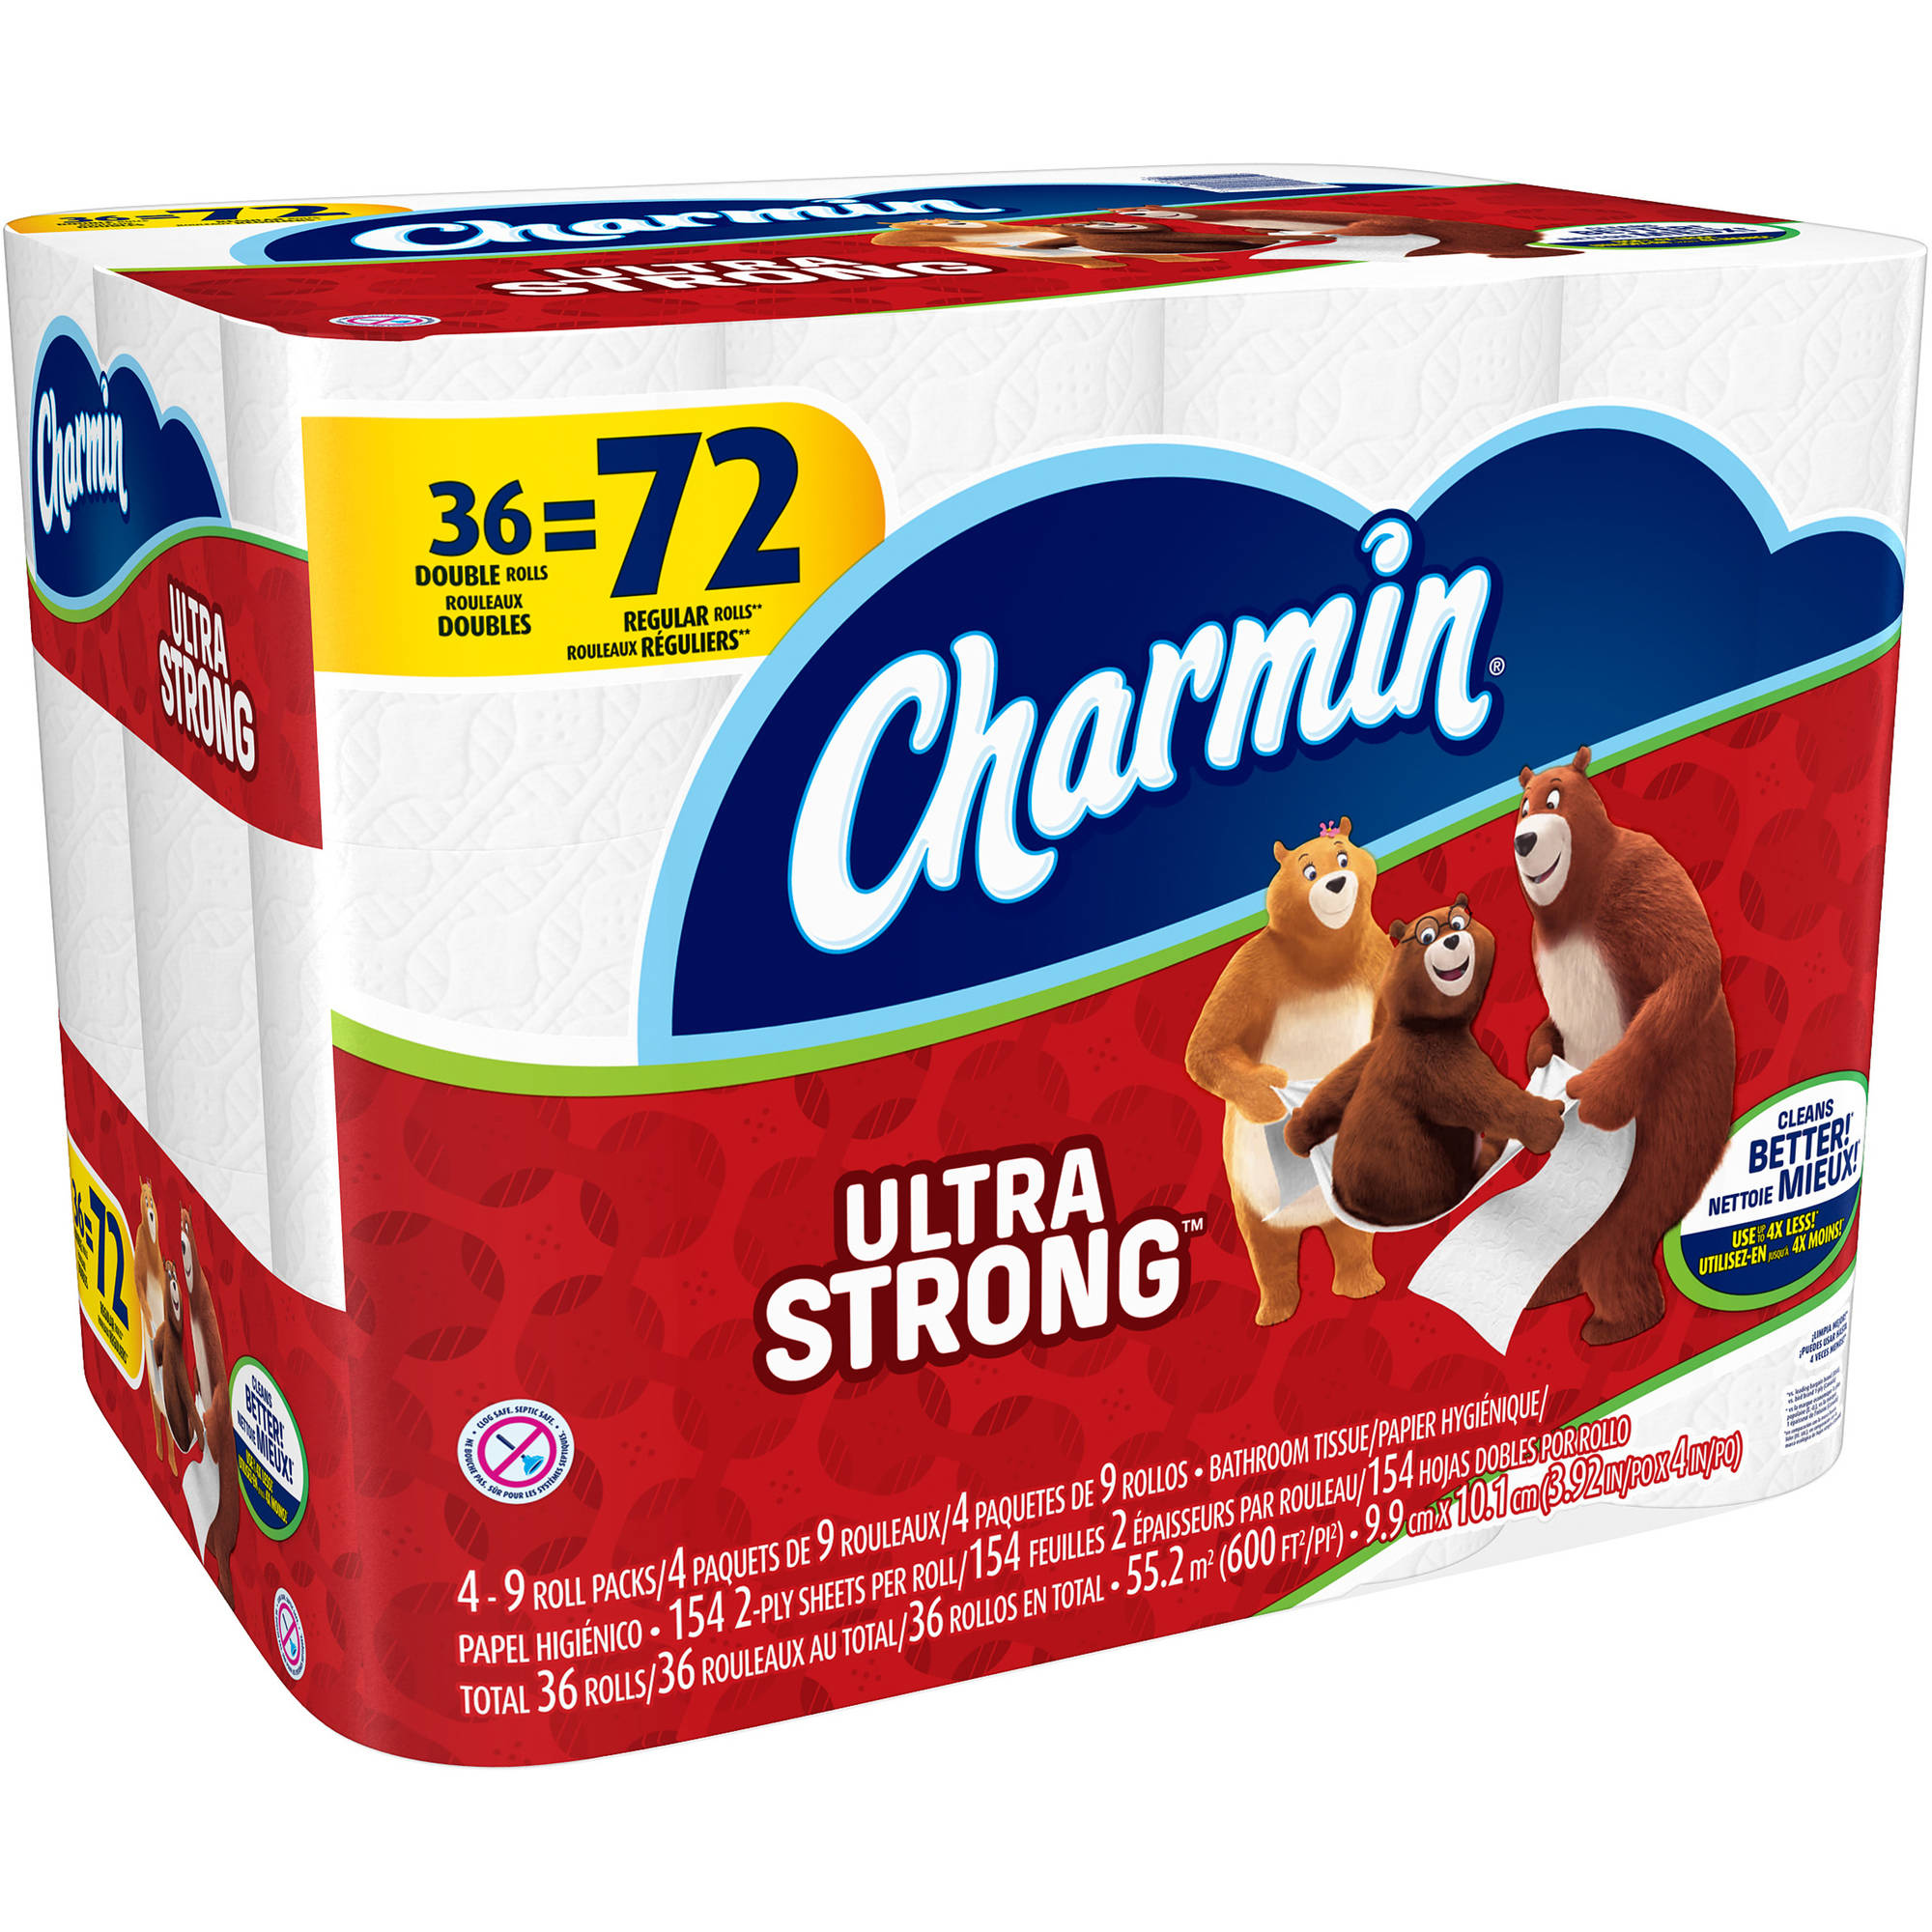 Charmin Ultra Strong Toilet Paper Double Rolls, 154 sheets, 36 rolls